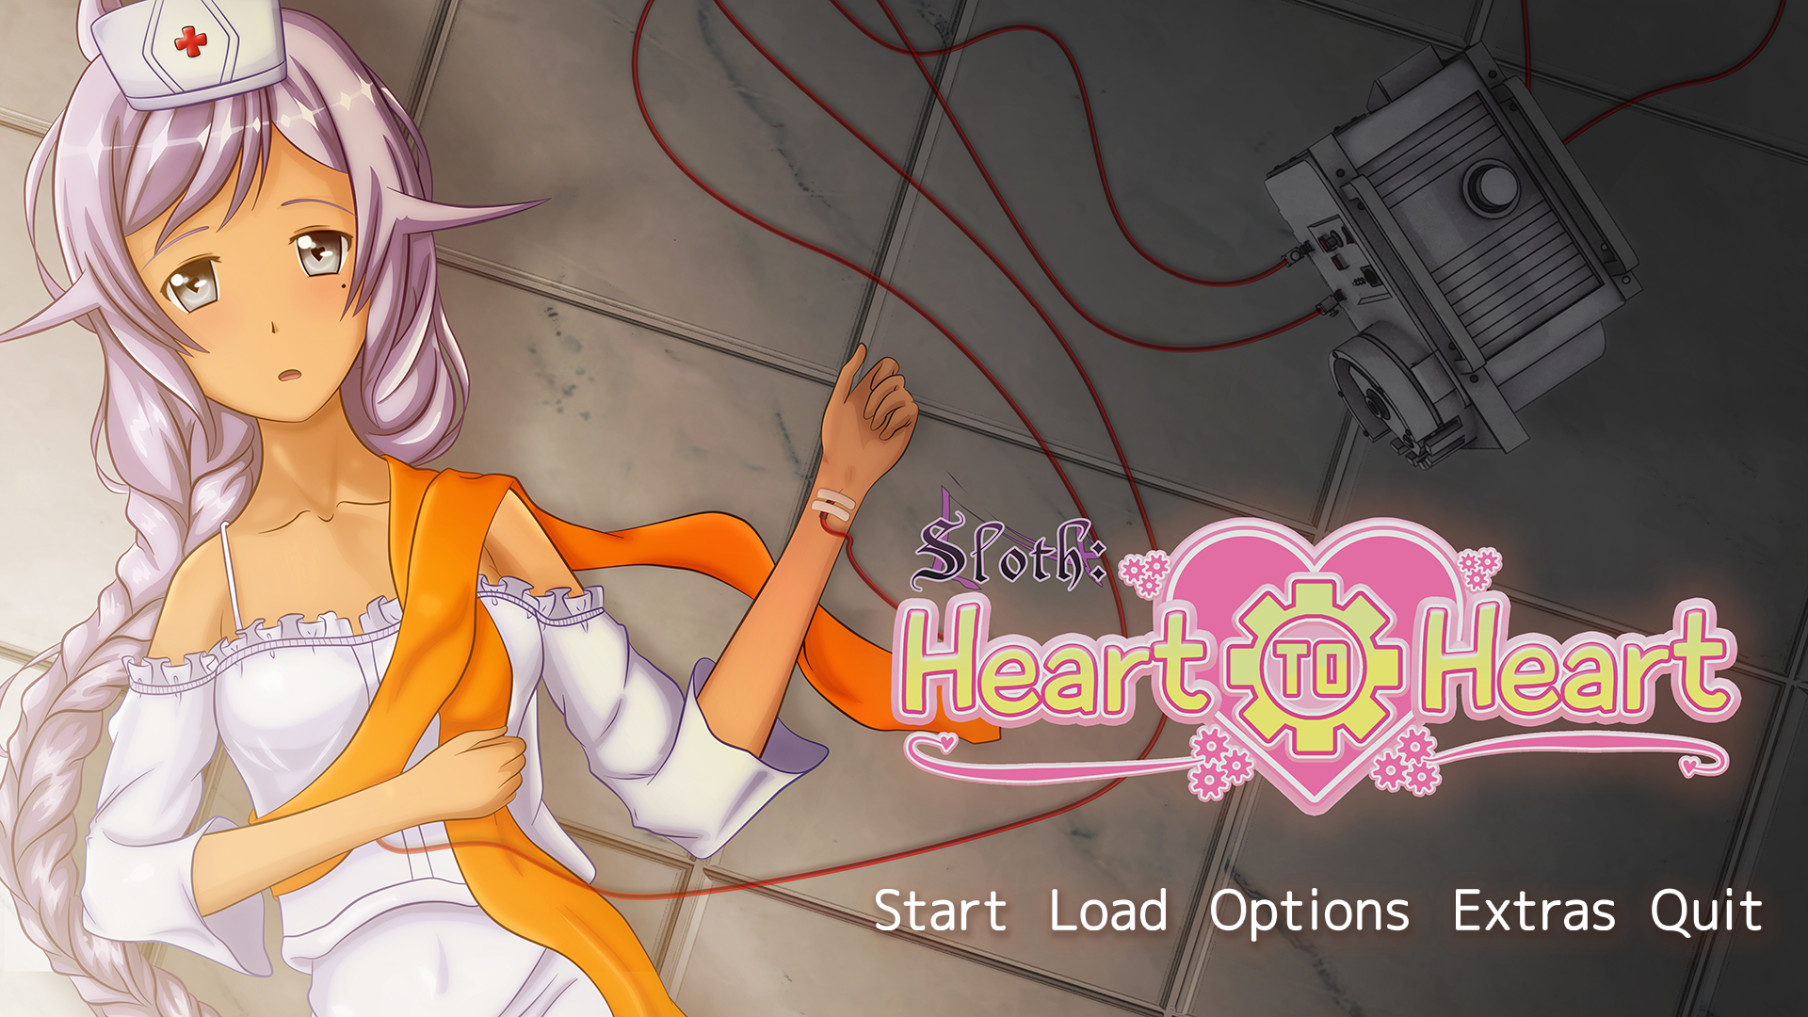 Sloth: Heart to Heart [Final] [NarReiTor]